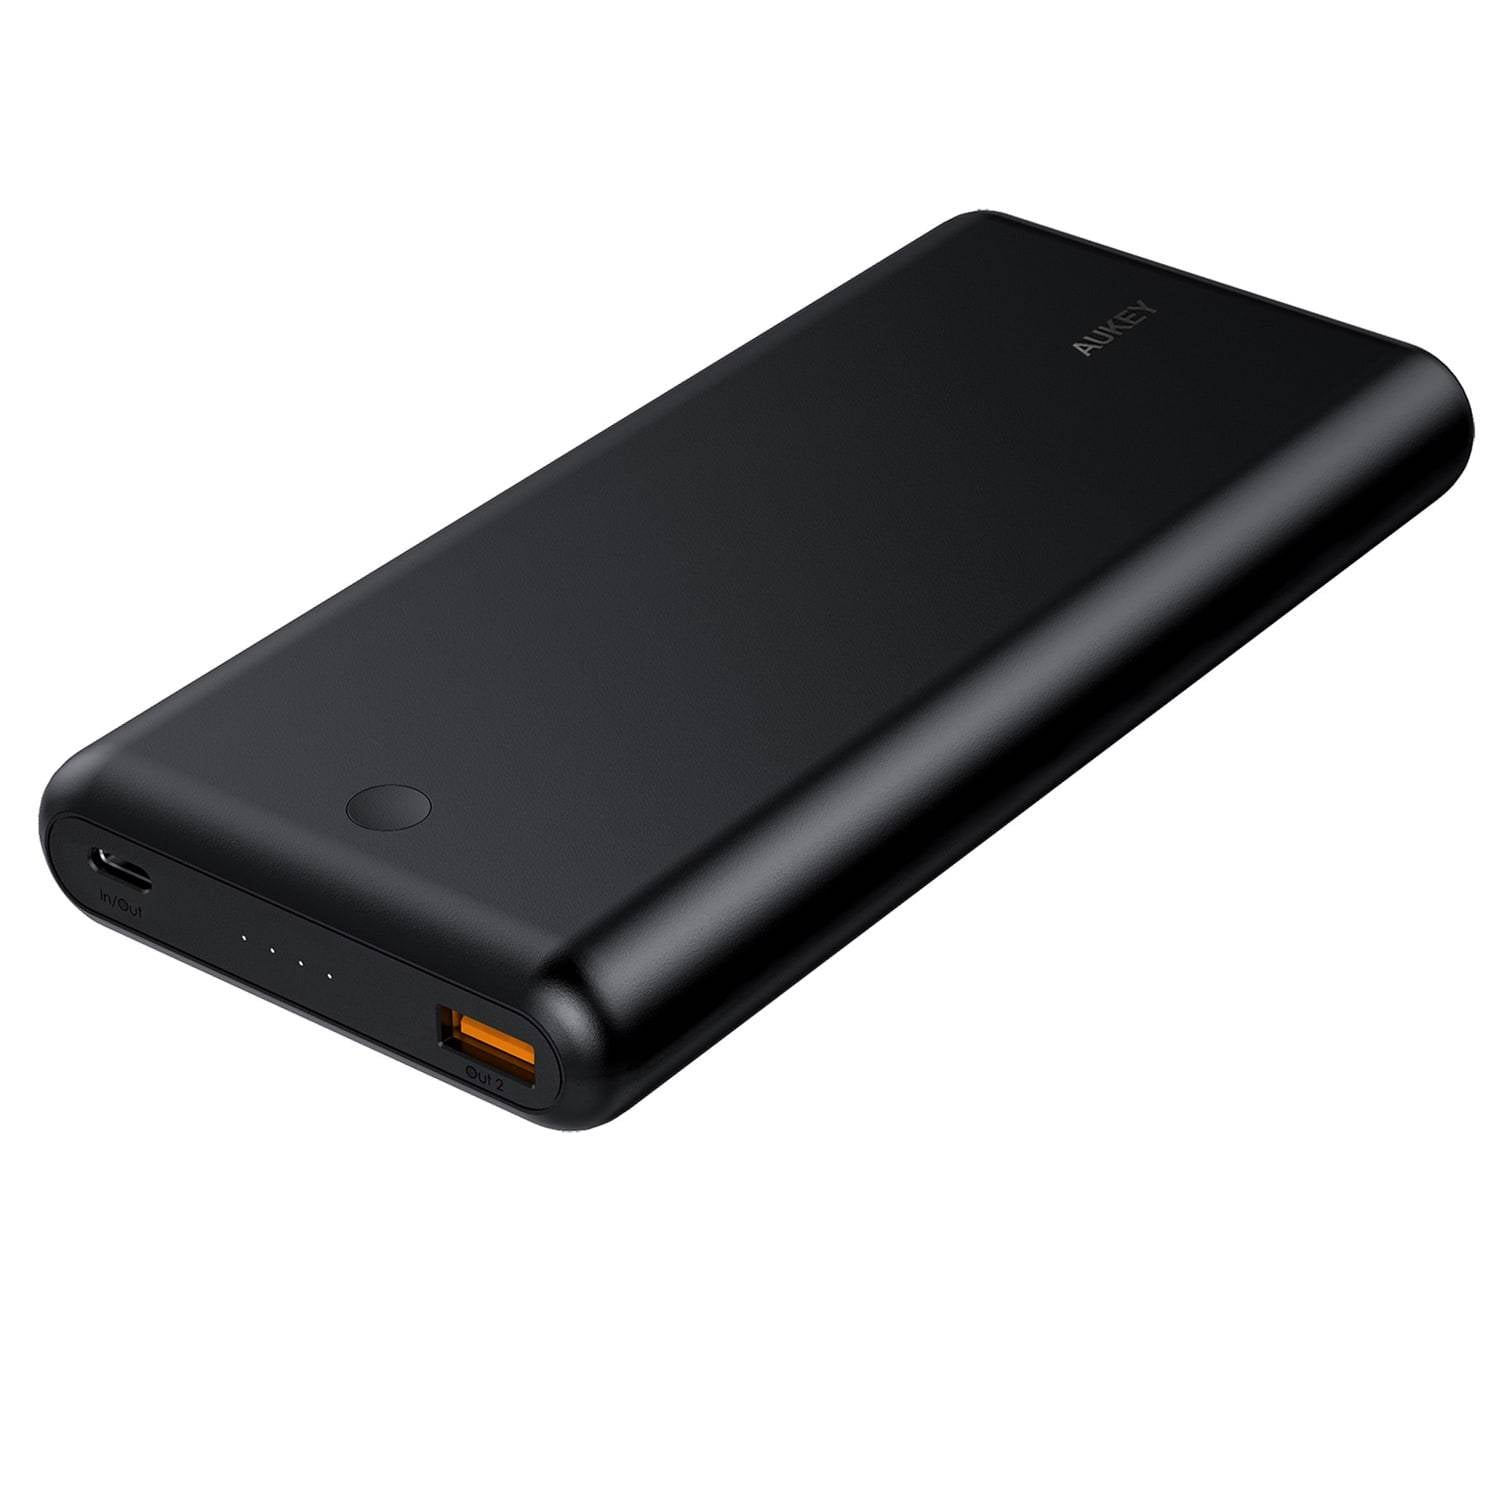 26800mAh 63W PD 3.0 USB C Power Bank With QC 3.0 | PB-XD26 | Black | Aukey supertech.pk